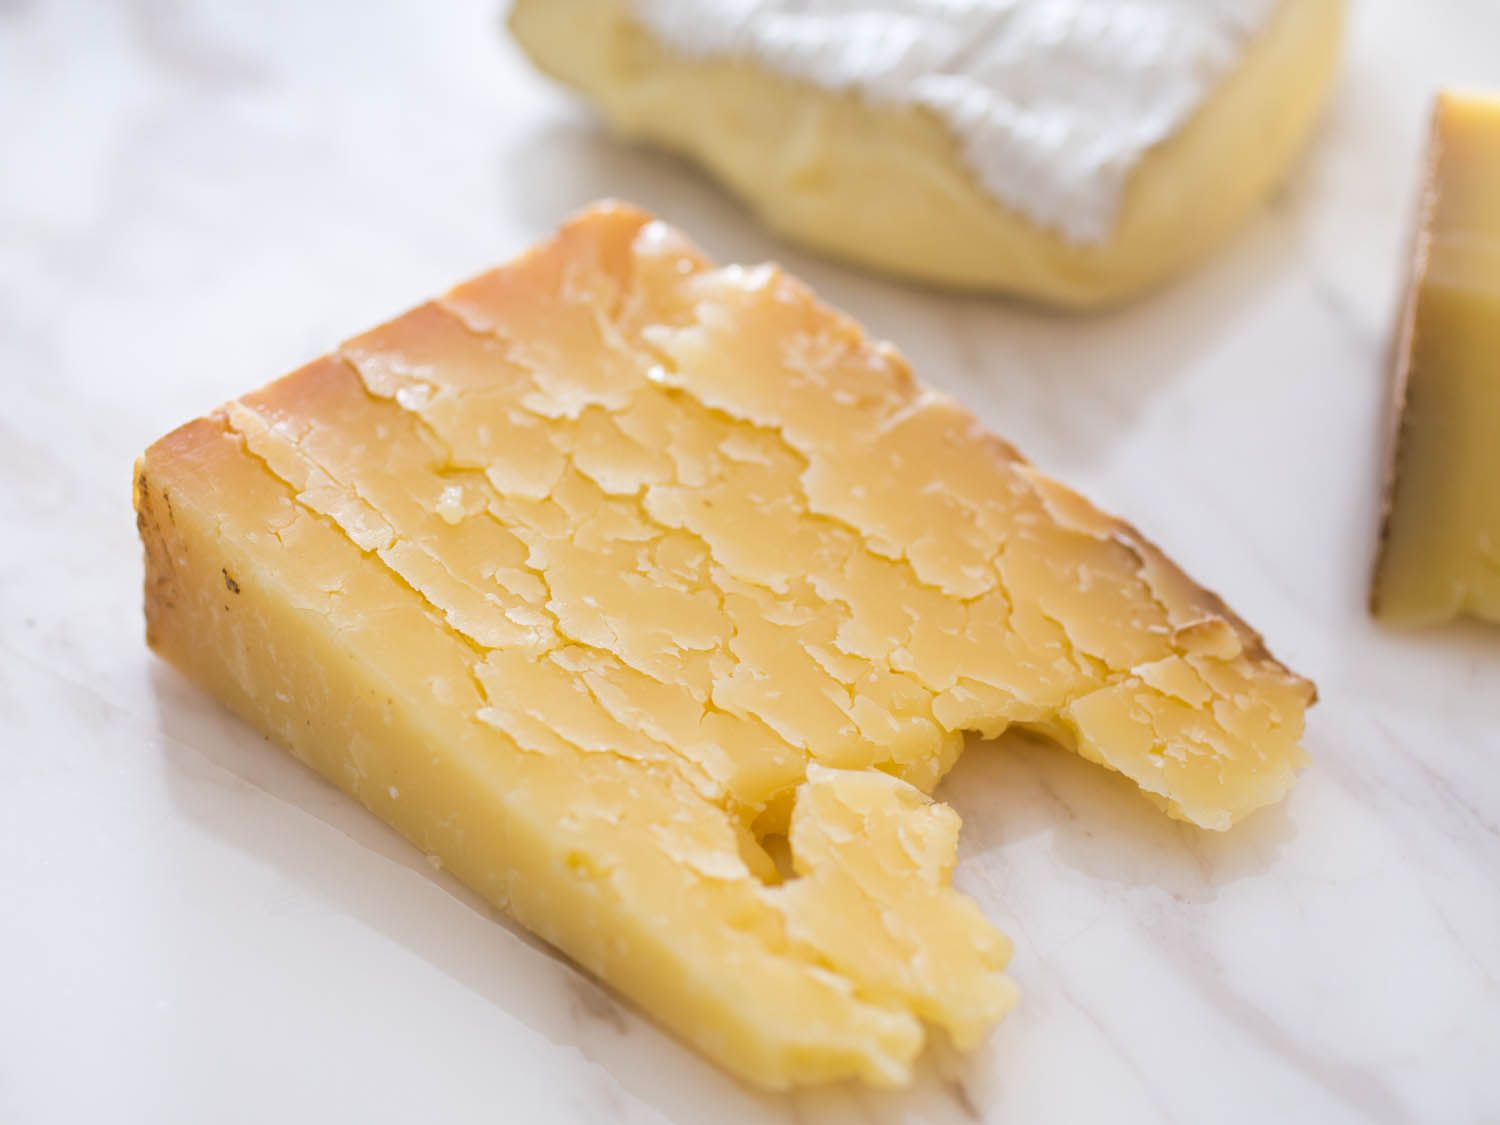 20150206-northeast-cheese-cabot-clothbound-cheddar-vicky-wasik-2.jpg